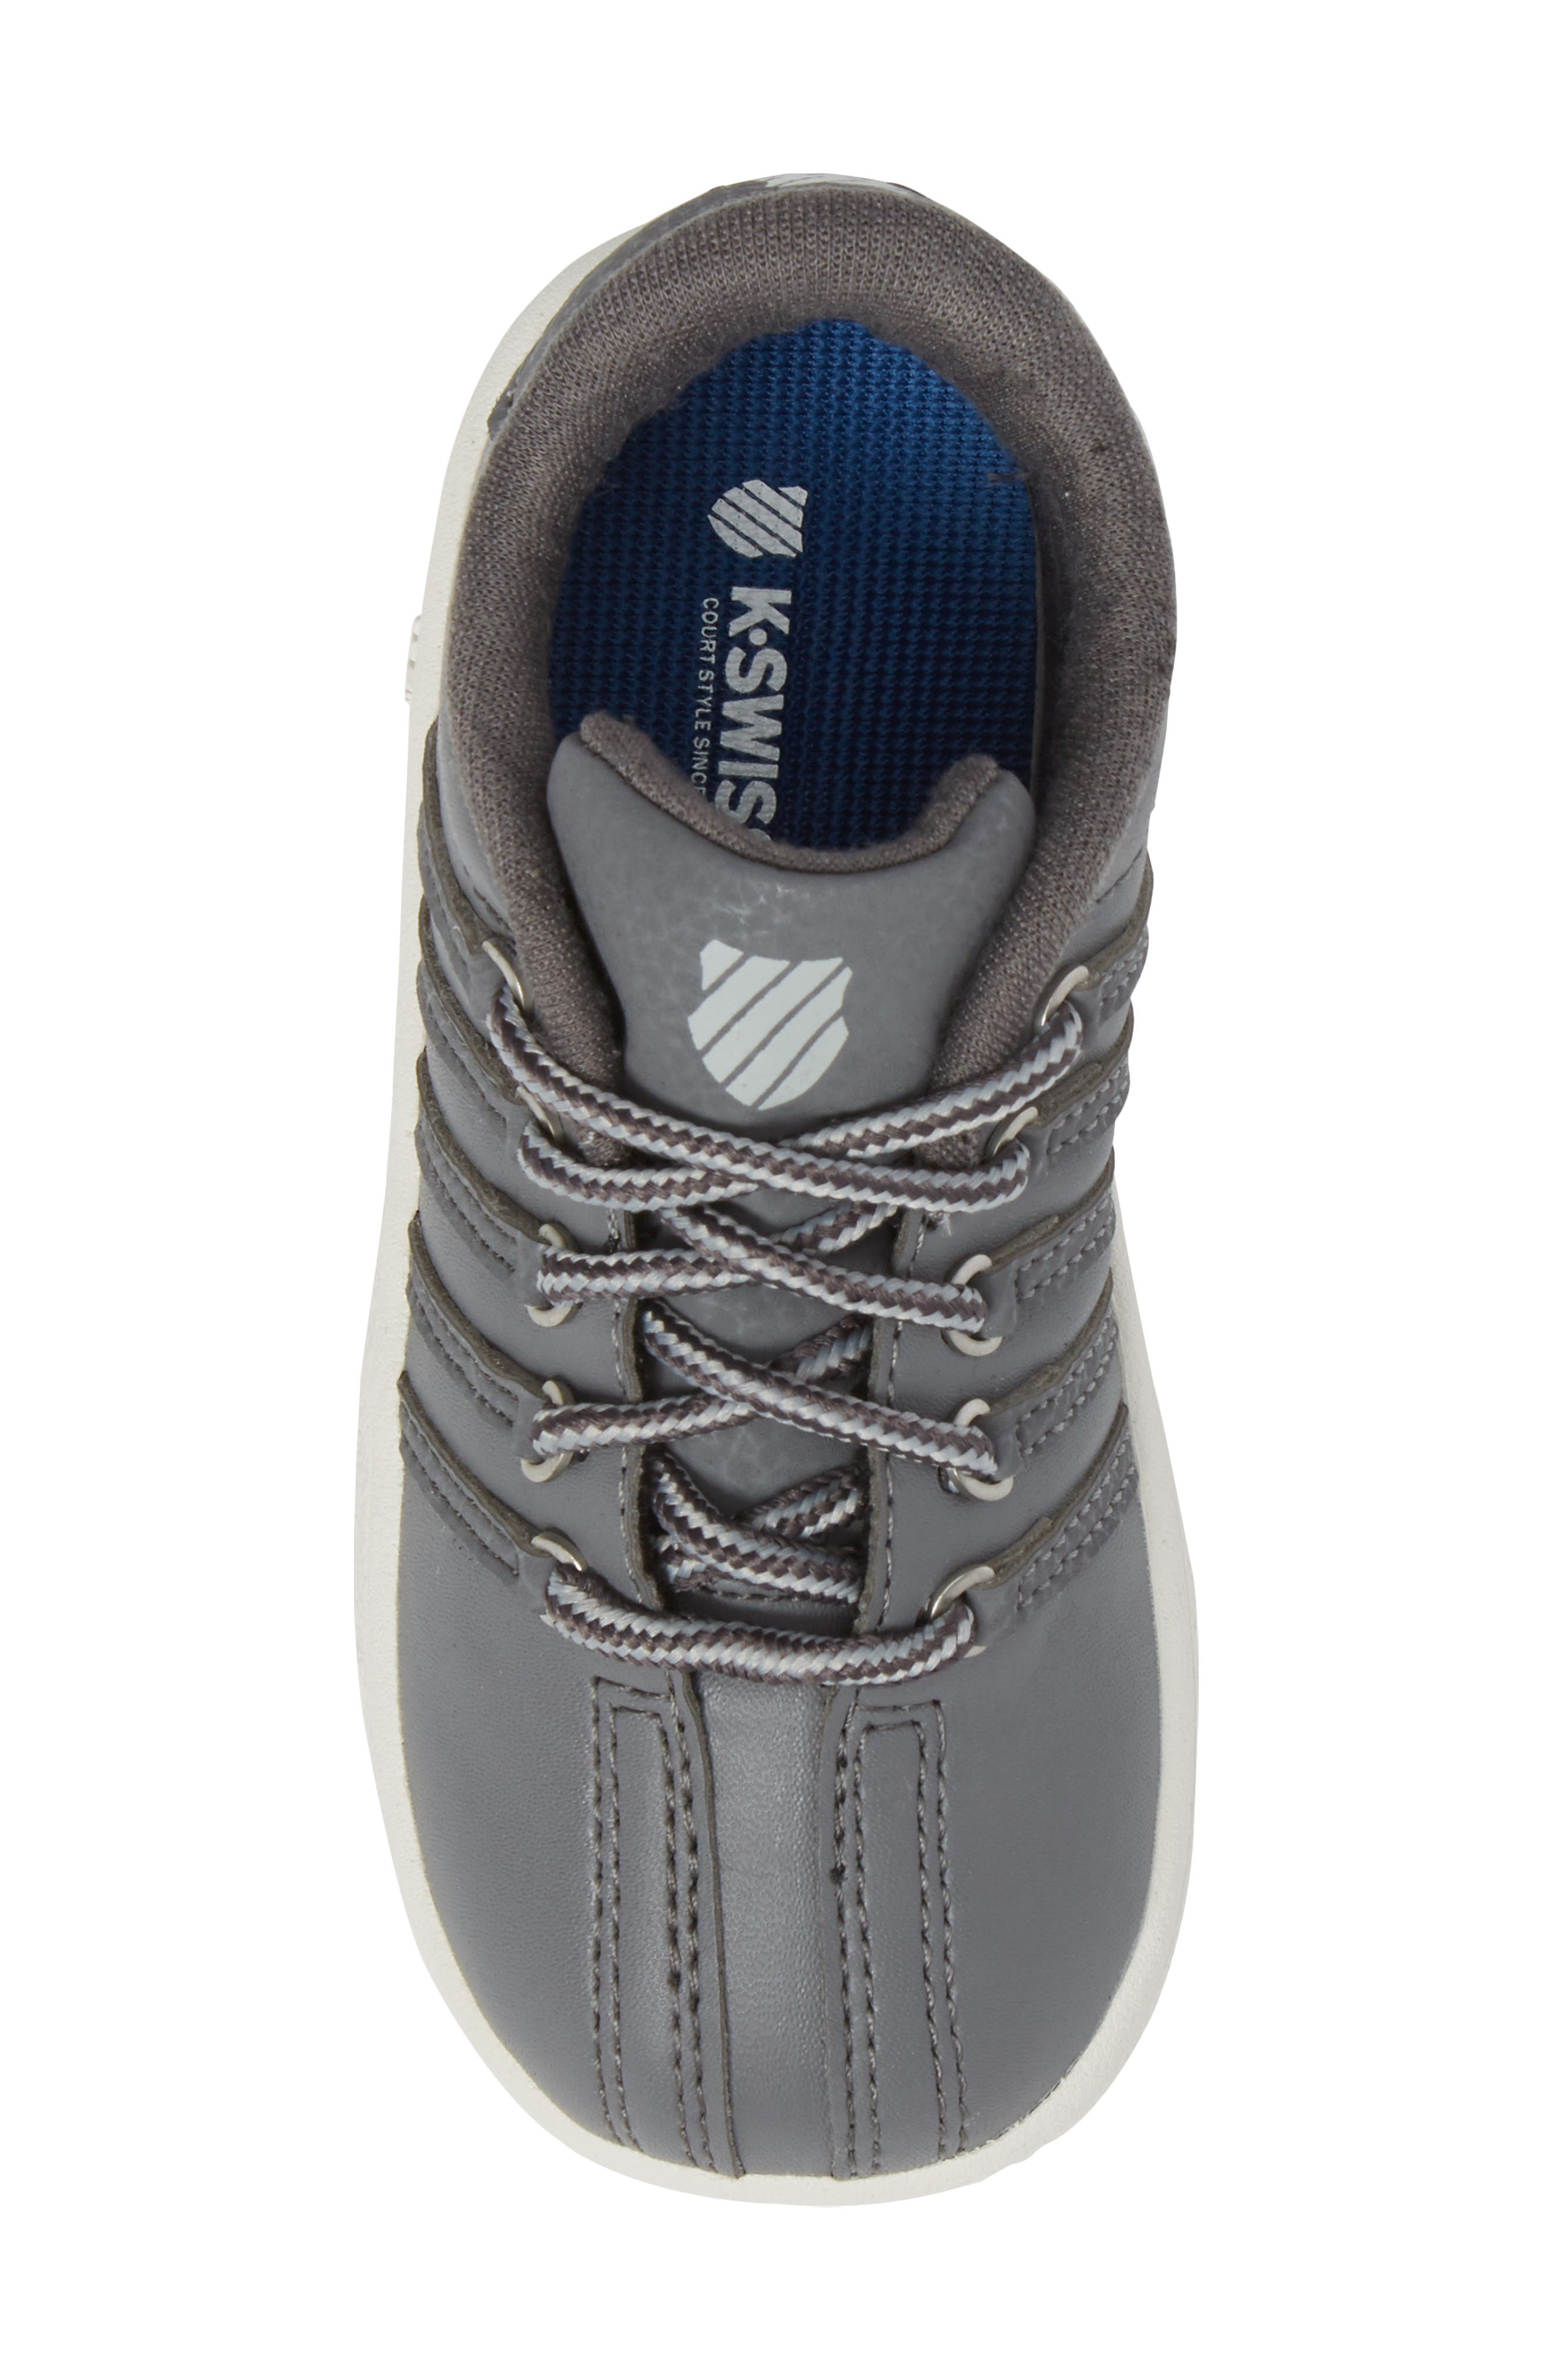 Classic VN Sneaker,                             Alternate thumbnail 5, color,                             Charcoal/ Storm/ Lily White